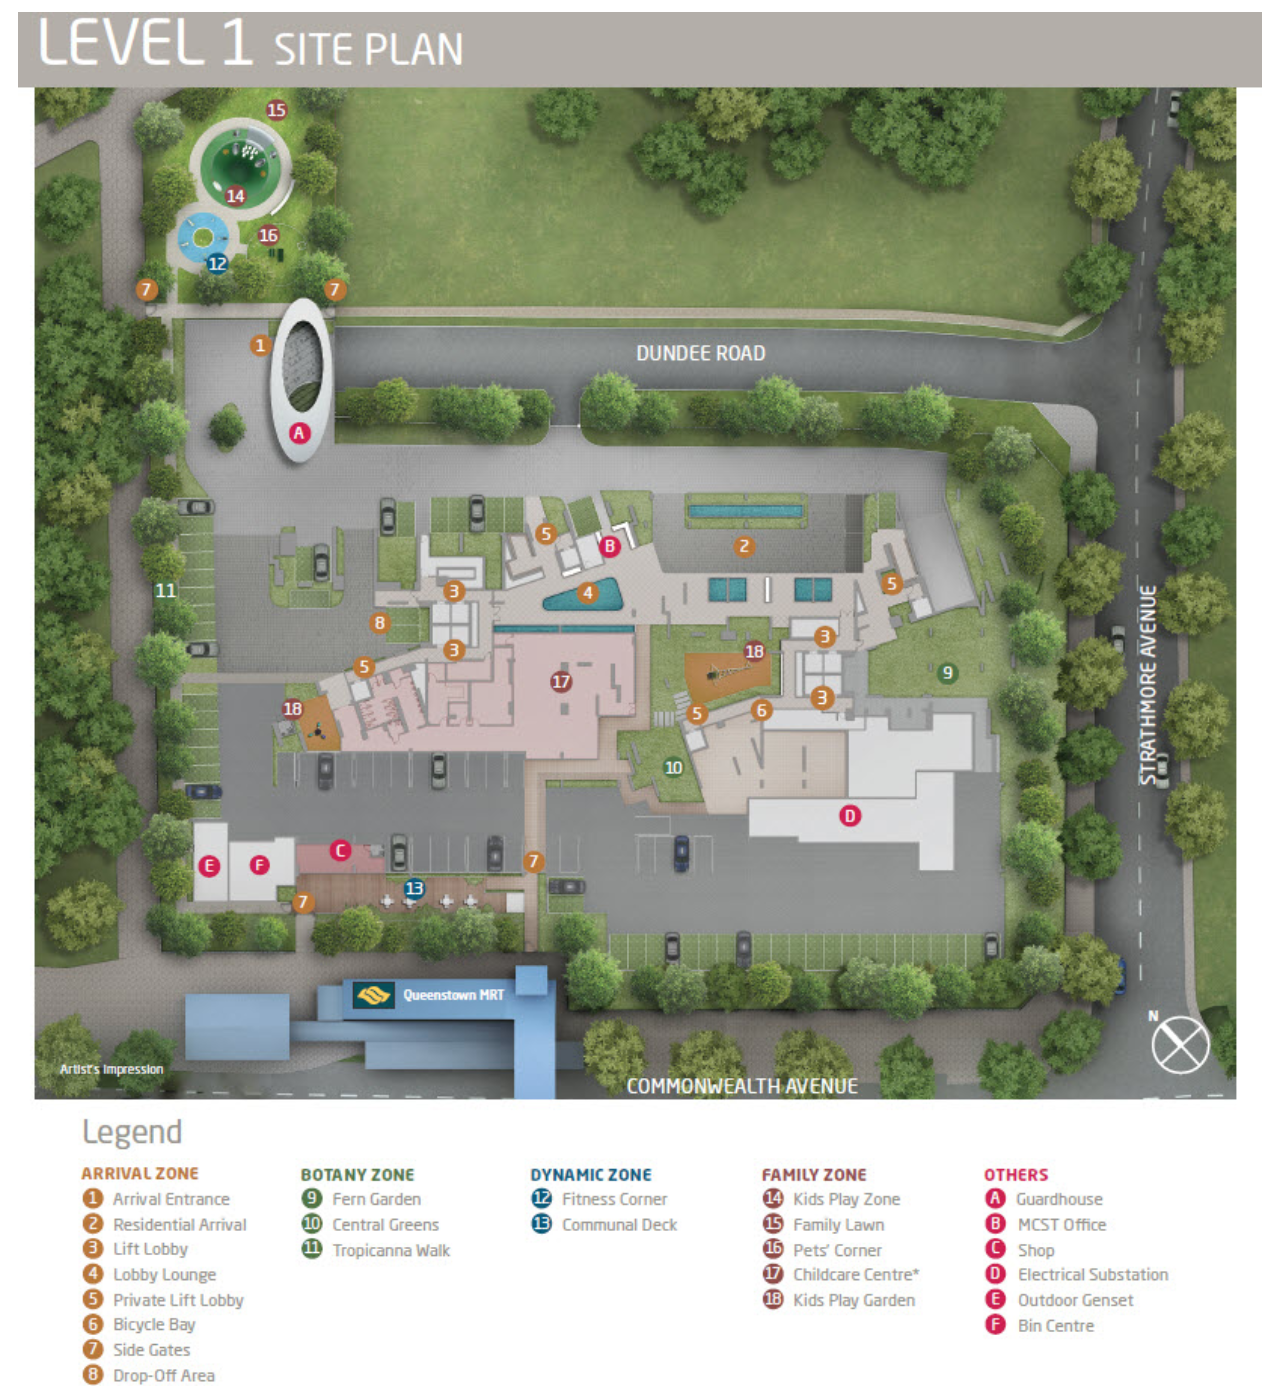 queens peak level 1 site plan